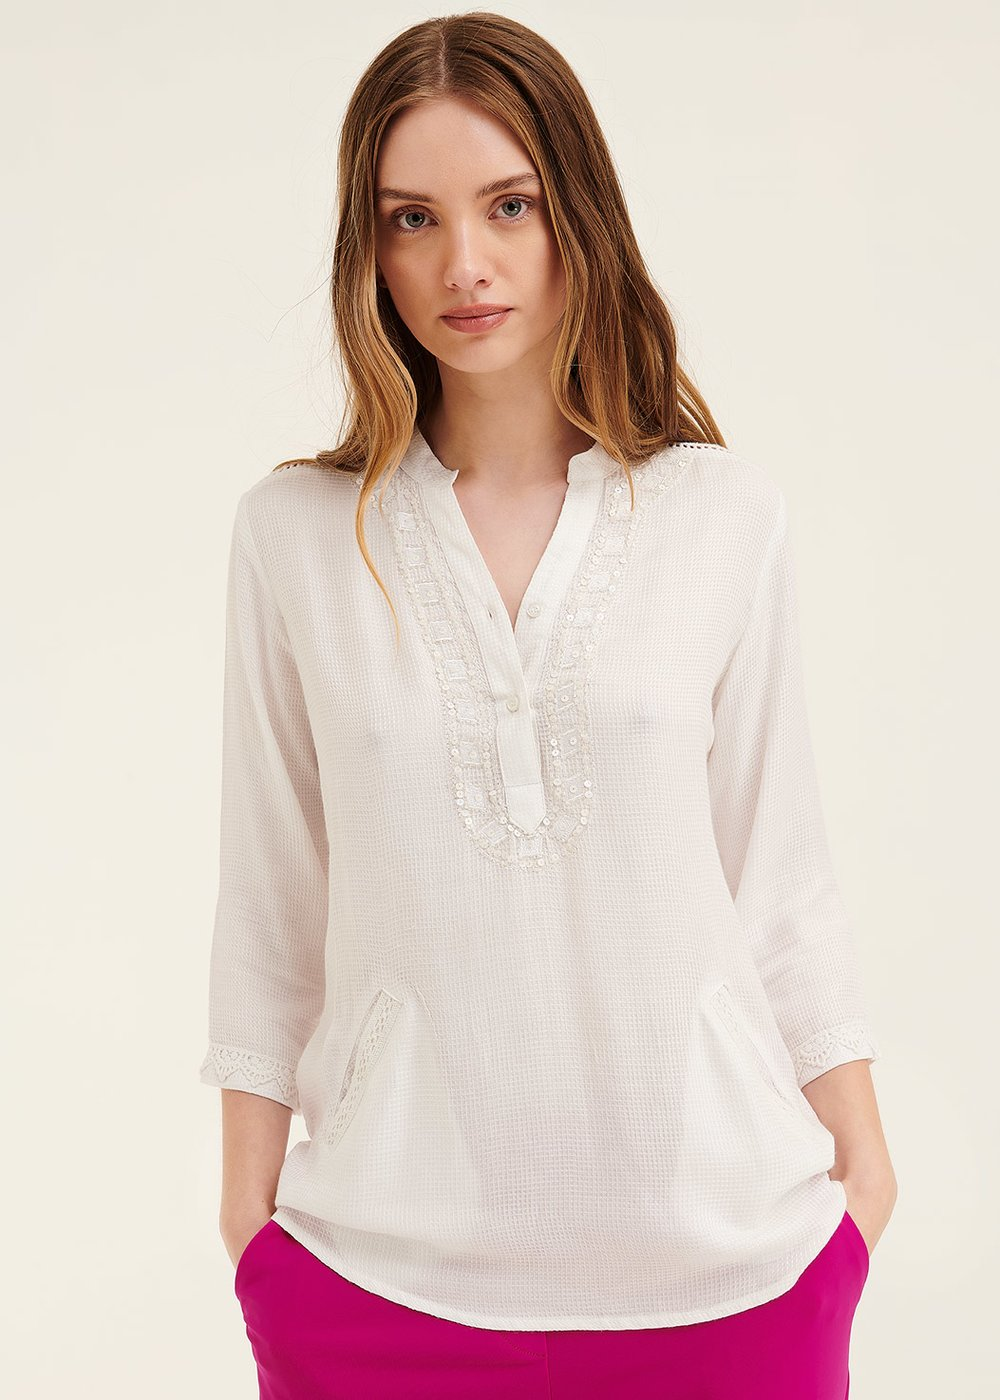 Catrin shirt with beaded embroidery - White - Woman